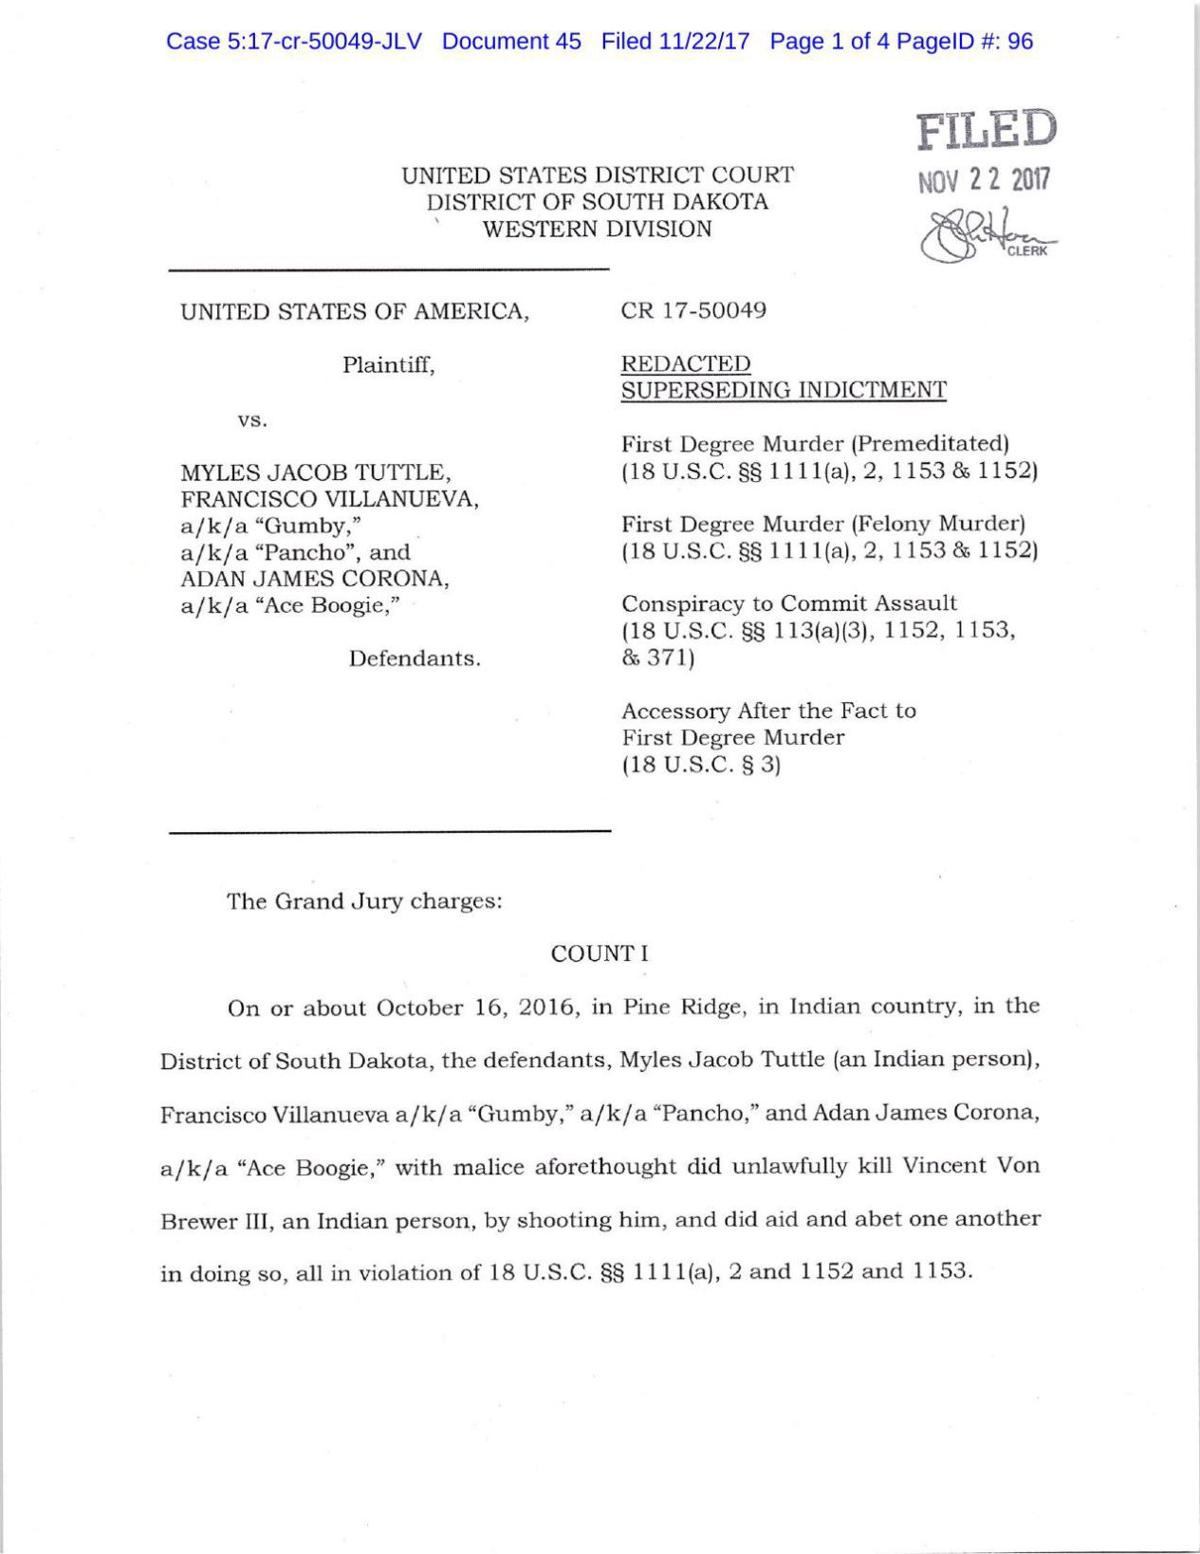 Tuttle, Villanueva and Corona - superseding indictment